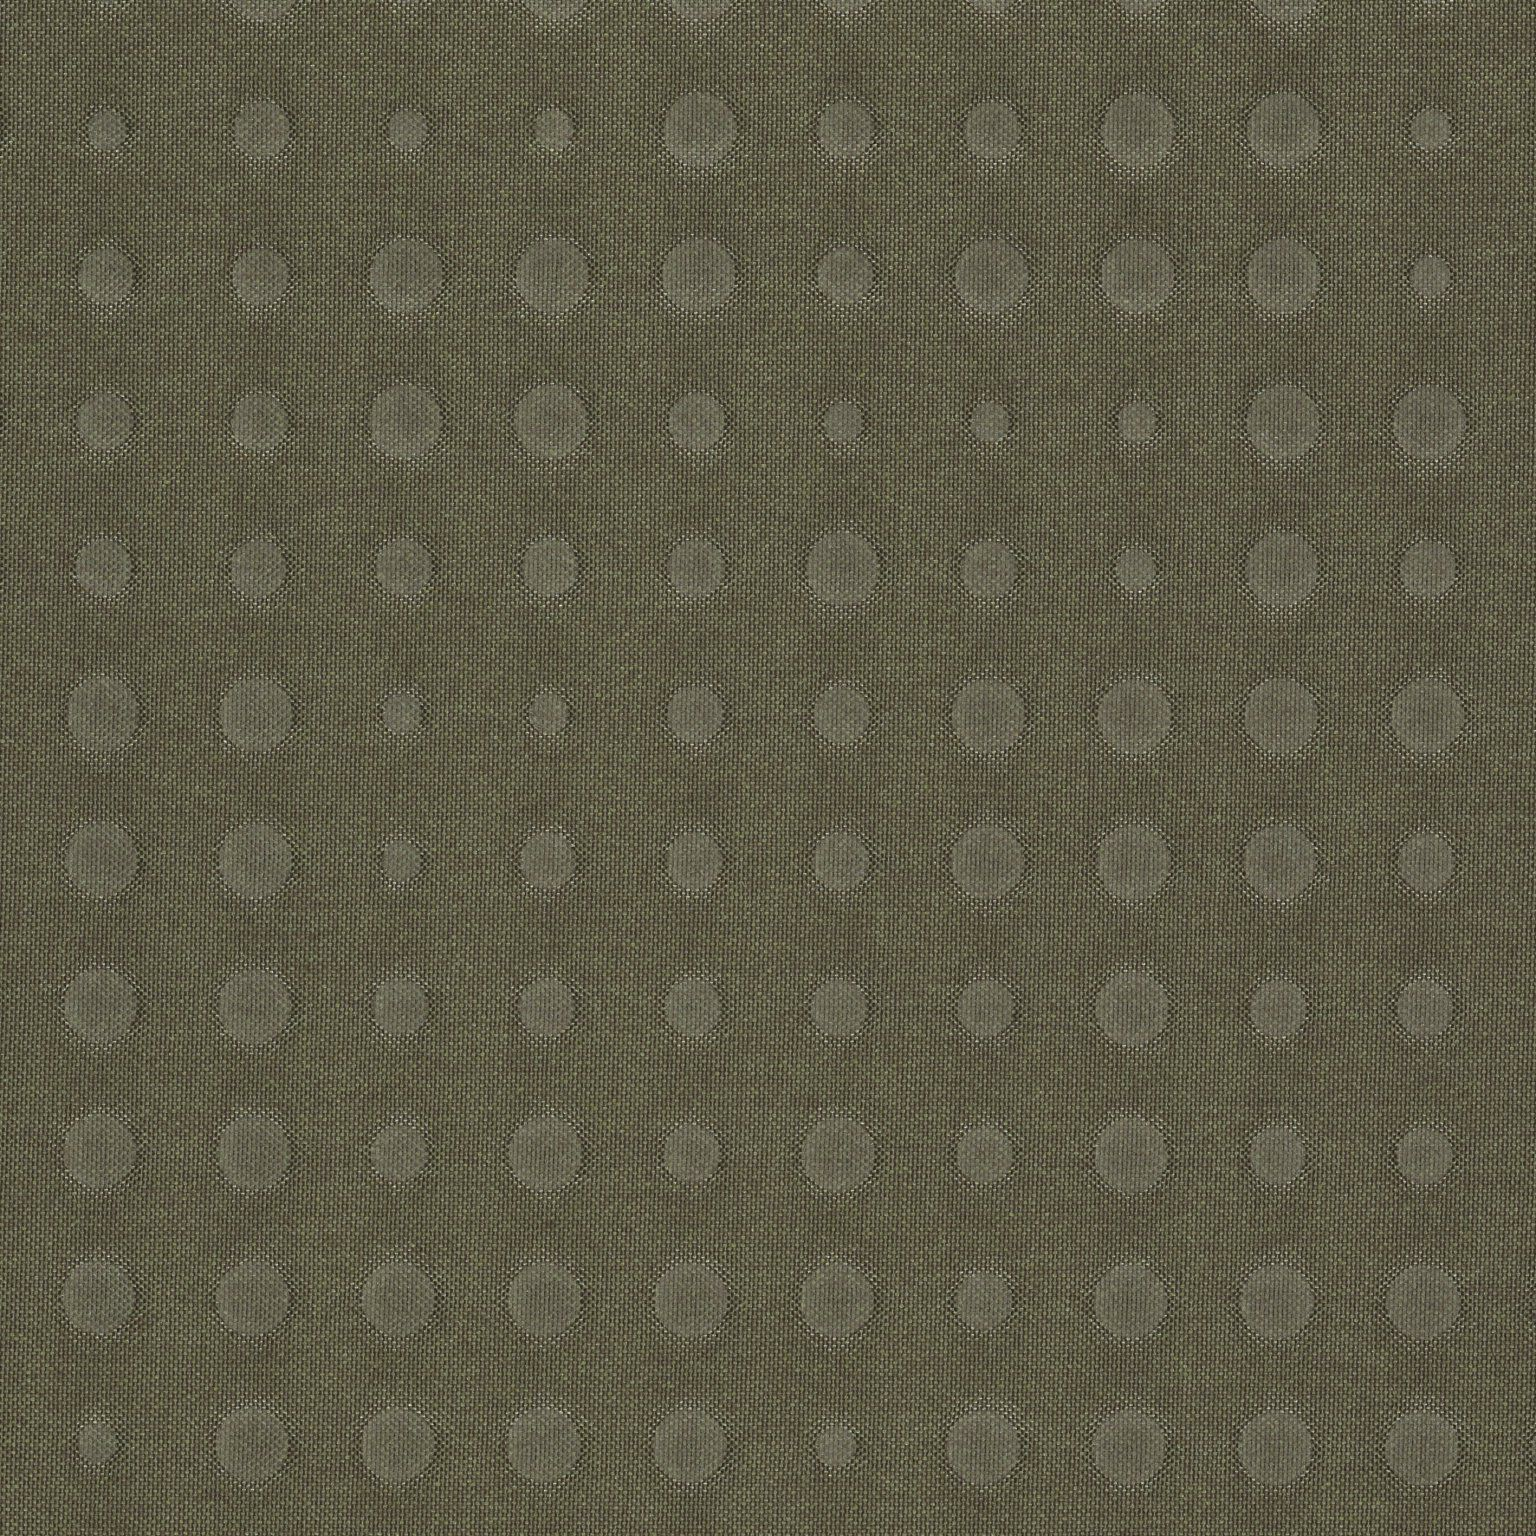 Kvadrat Upholstery Fabric Highfield Army Green Quilted Dots 3.125 yards 864 R